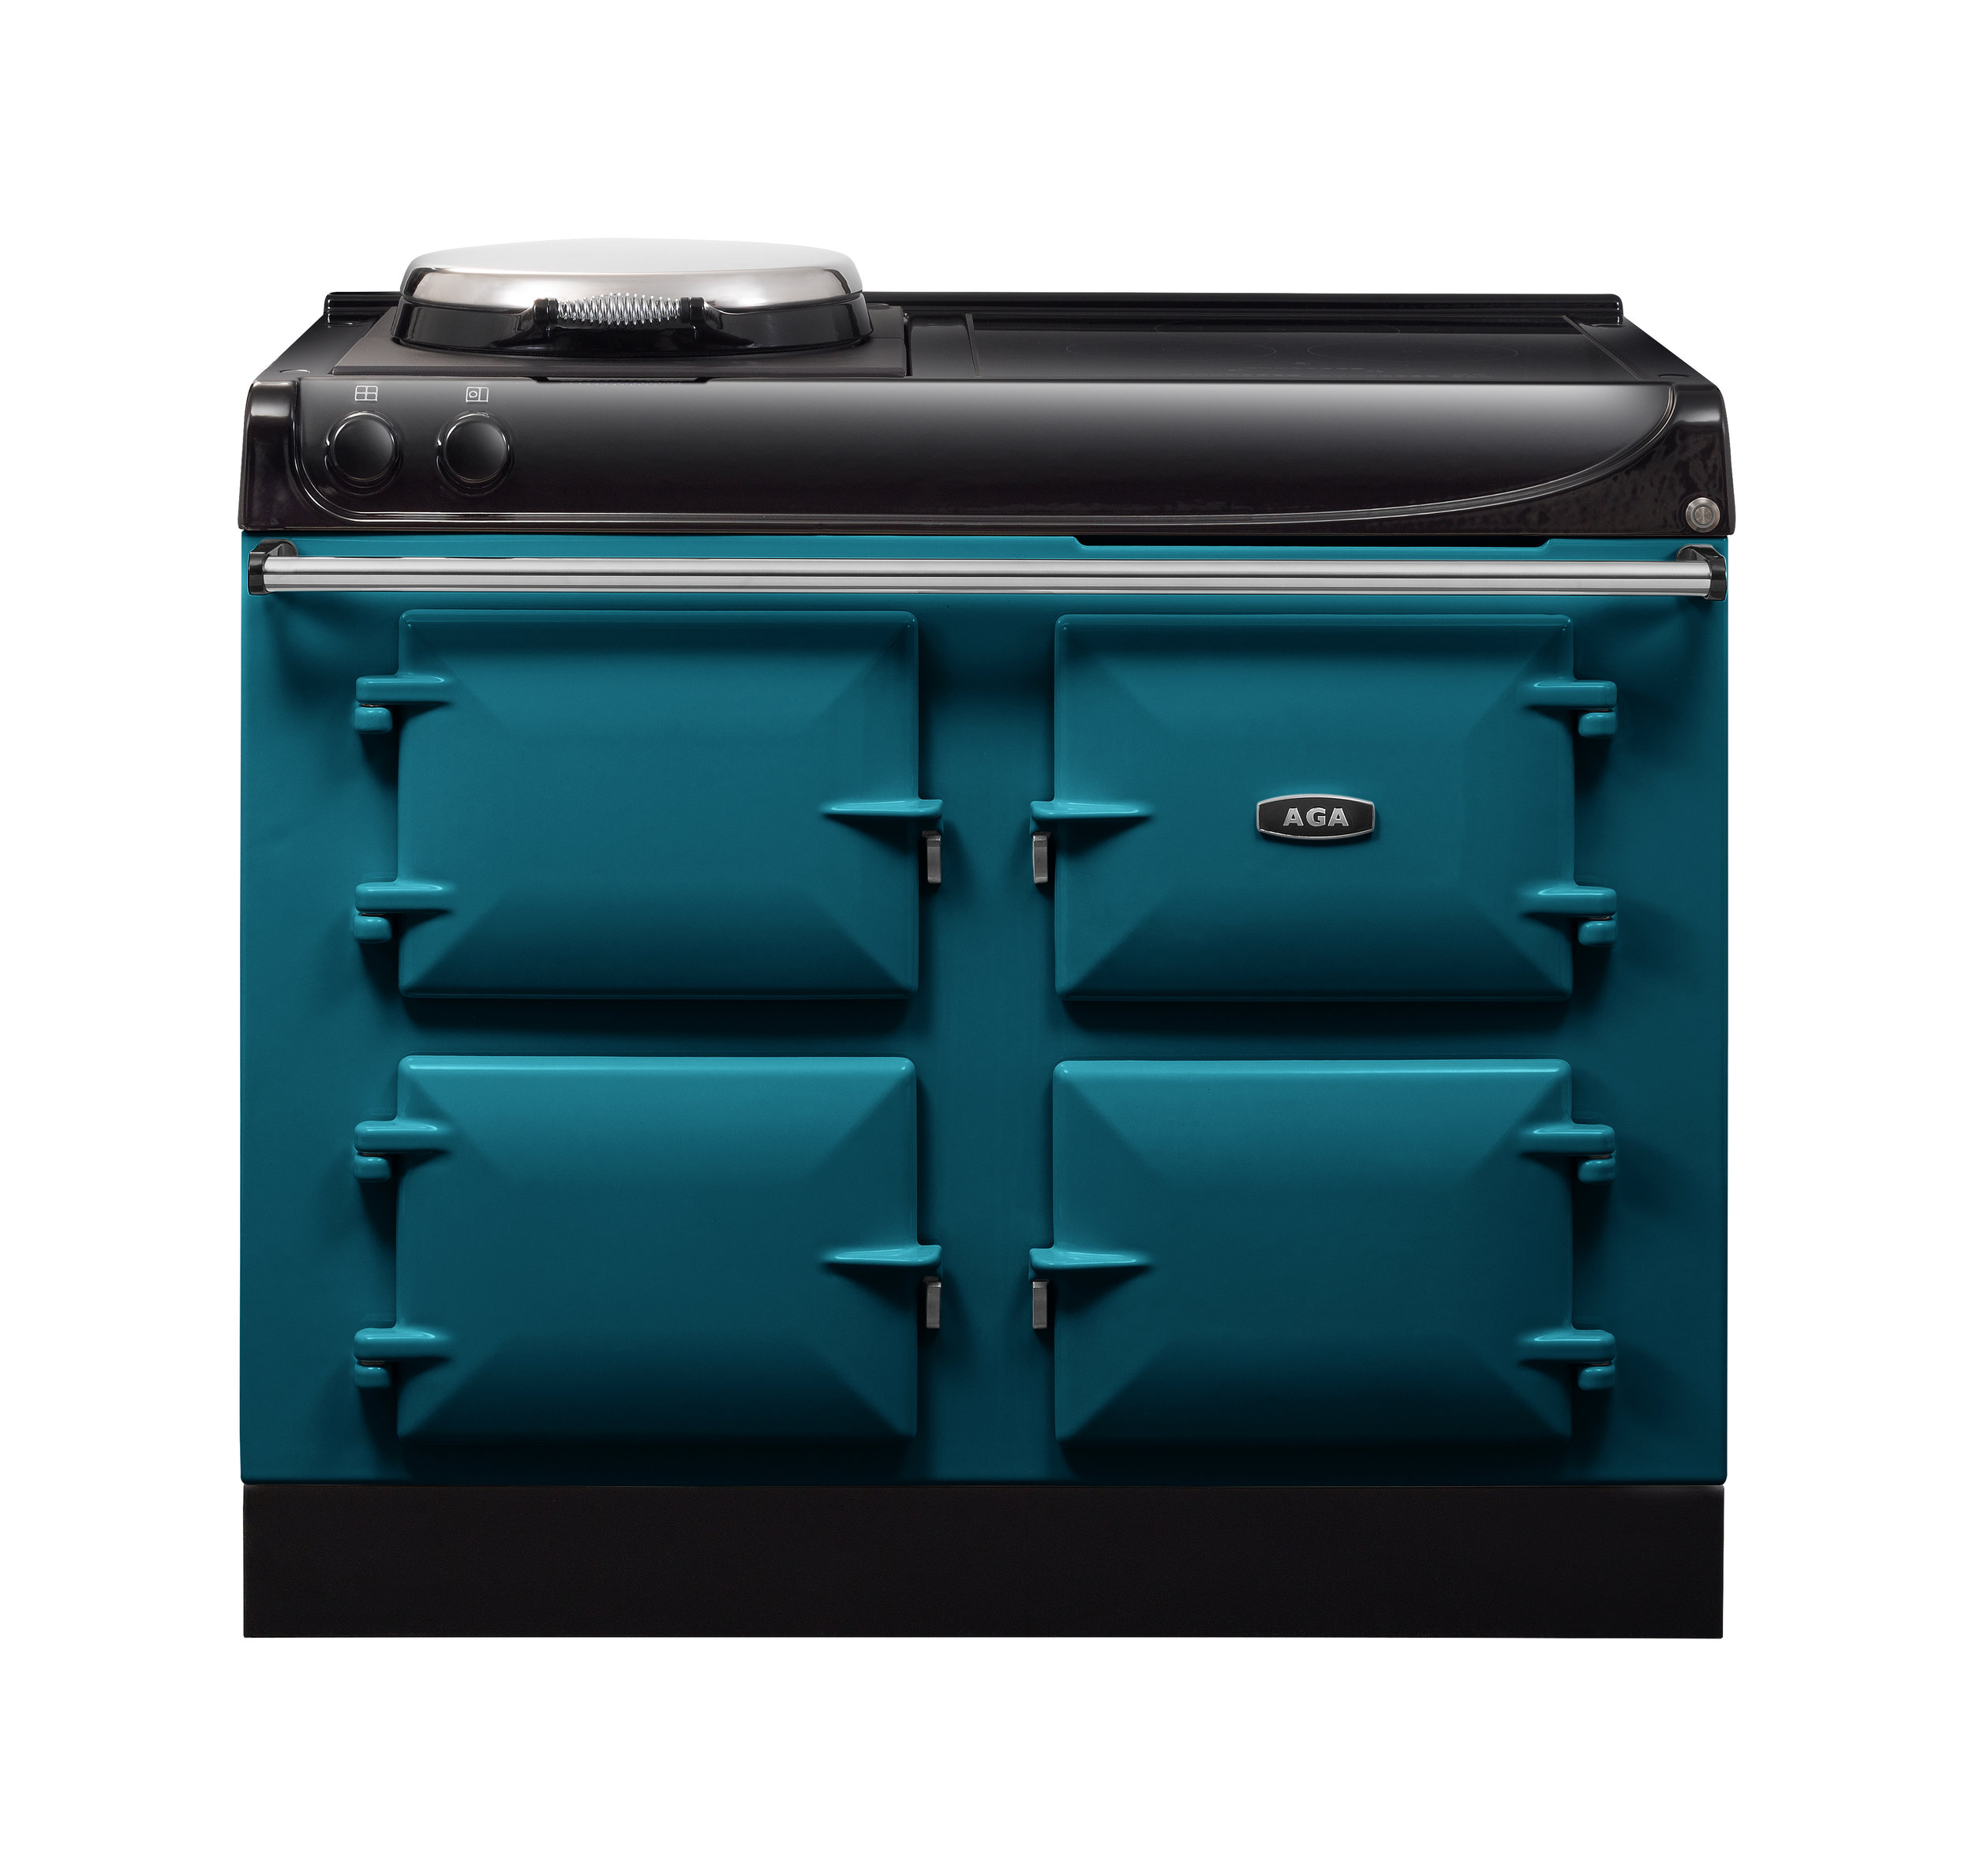 AGA 3 Series 110_Salcombe Blue.jpg